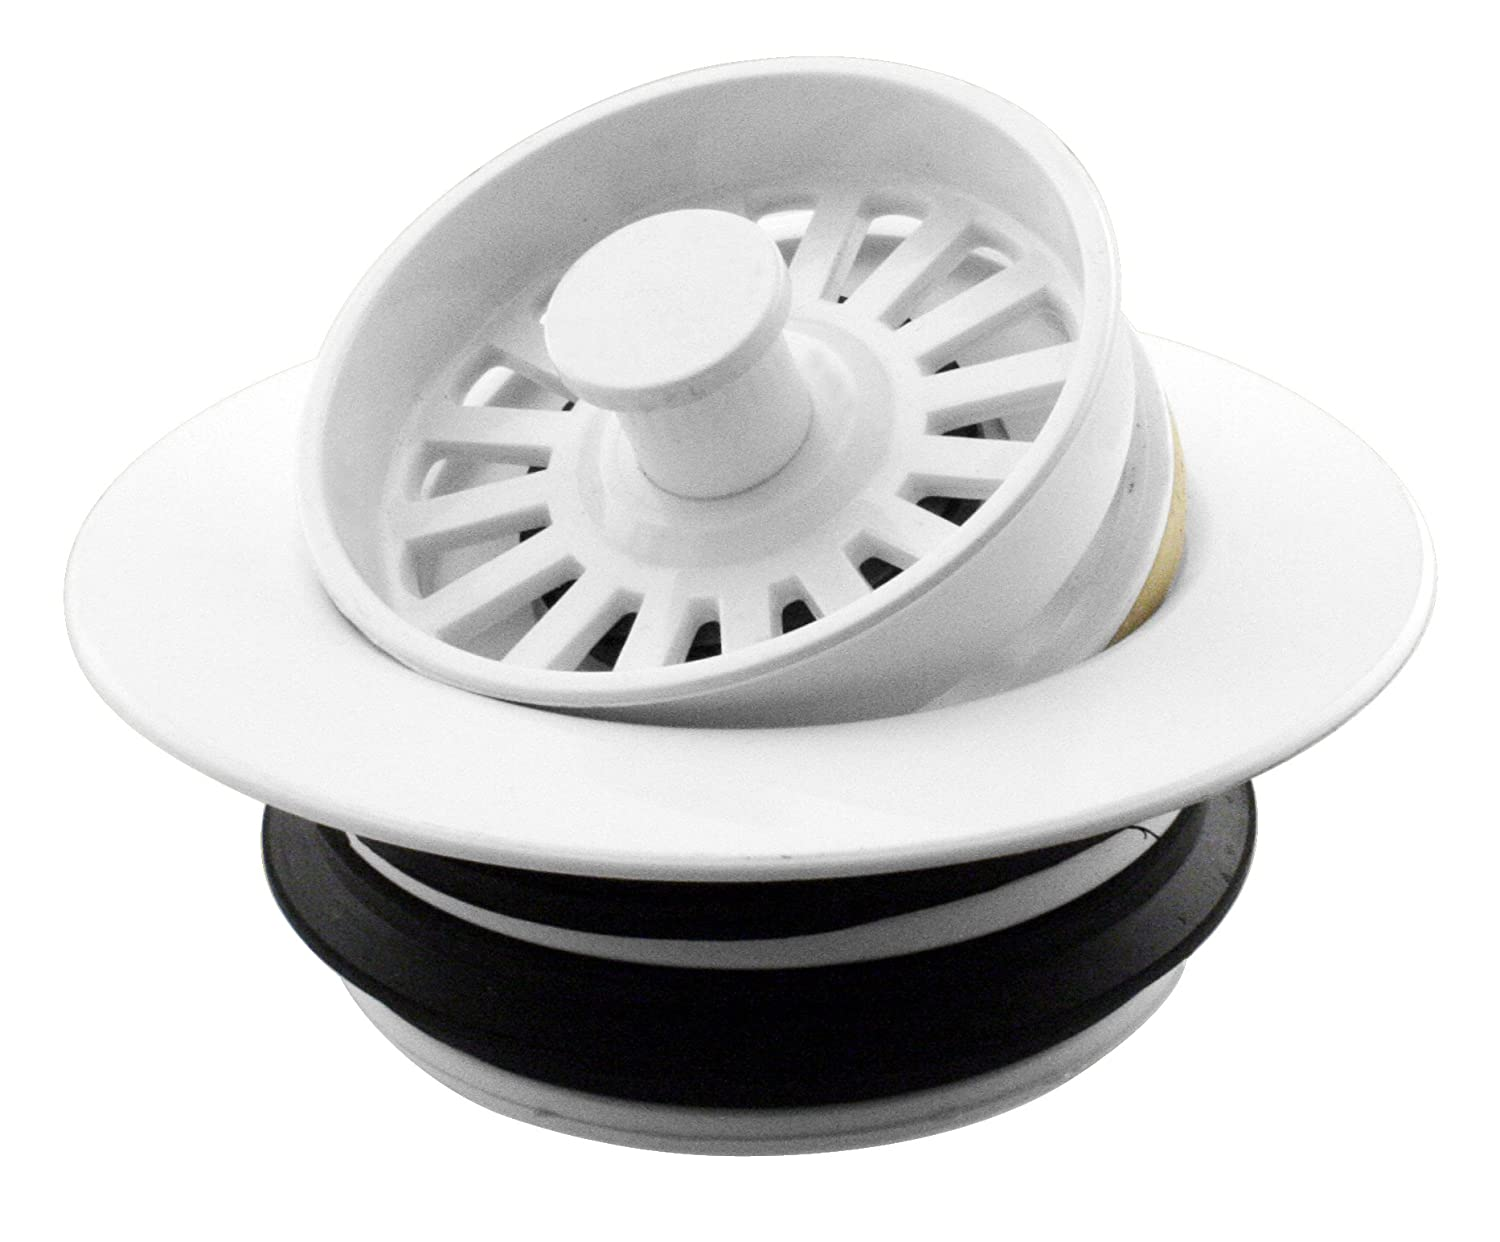 D2124-50 Universal Disposal Ring and Strainer Stopper in White - Disposer-YOW Westbrass